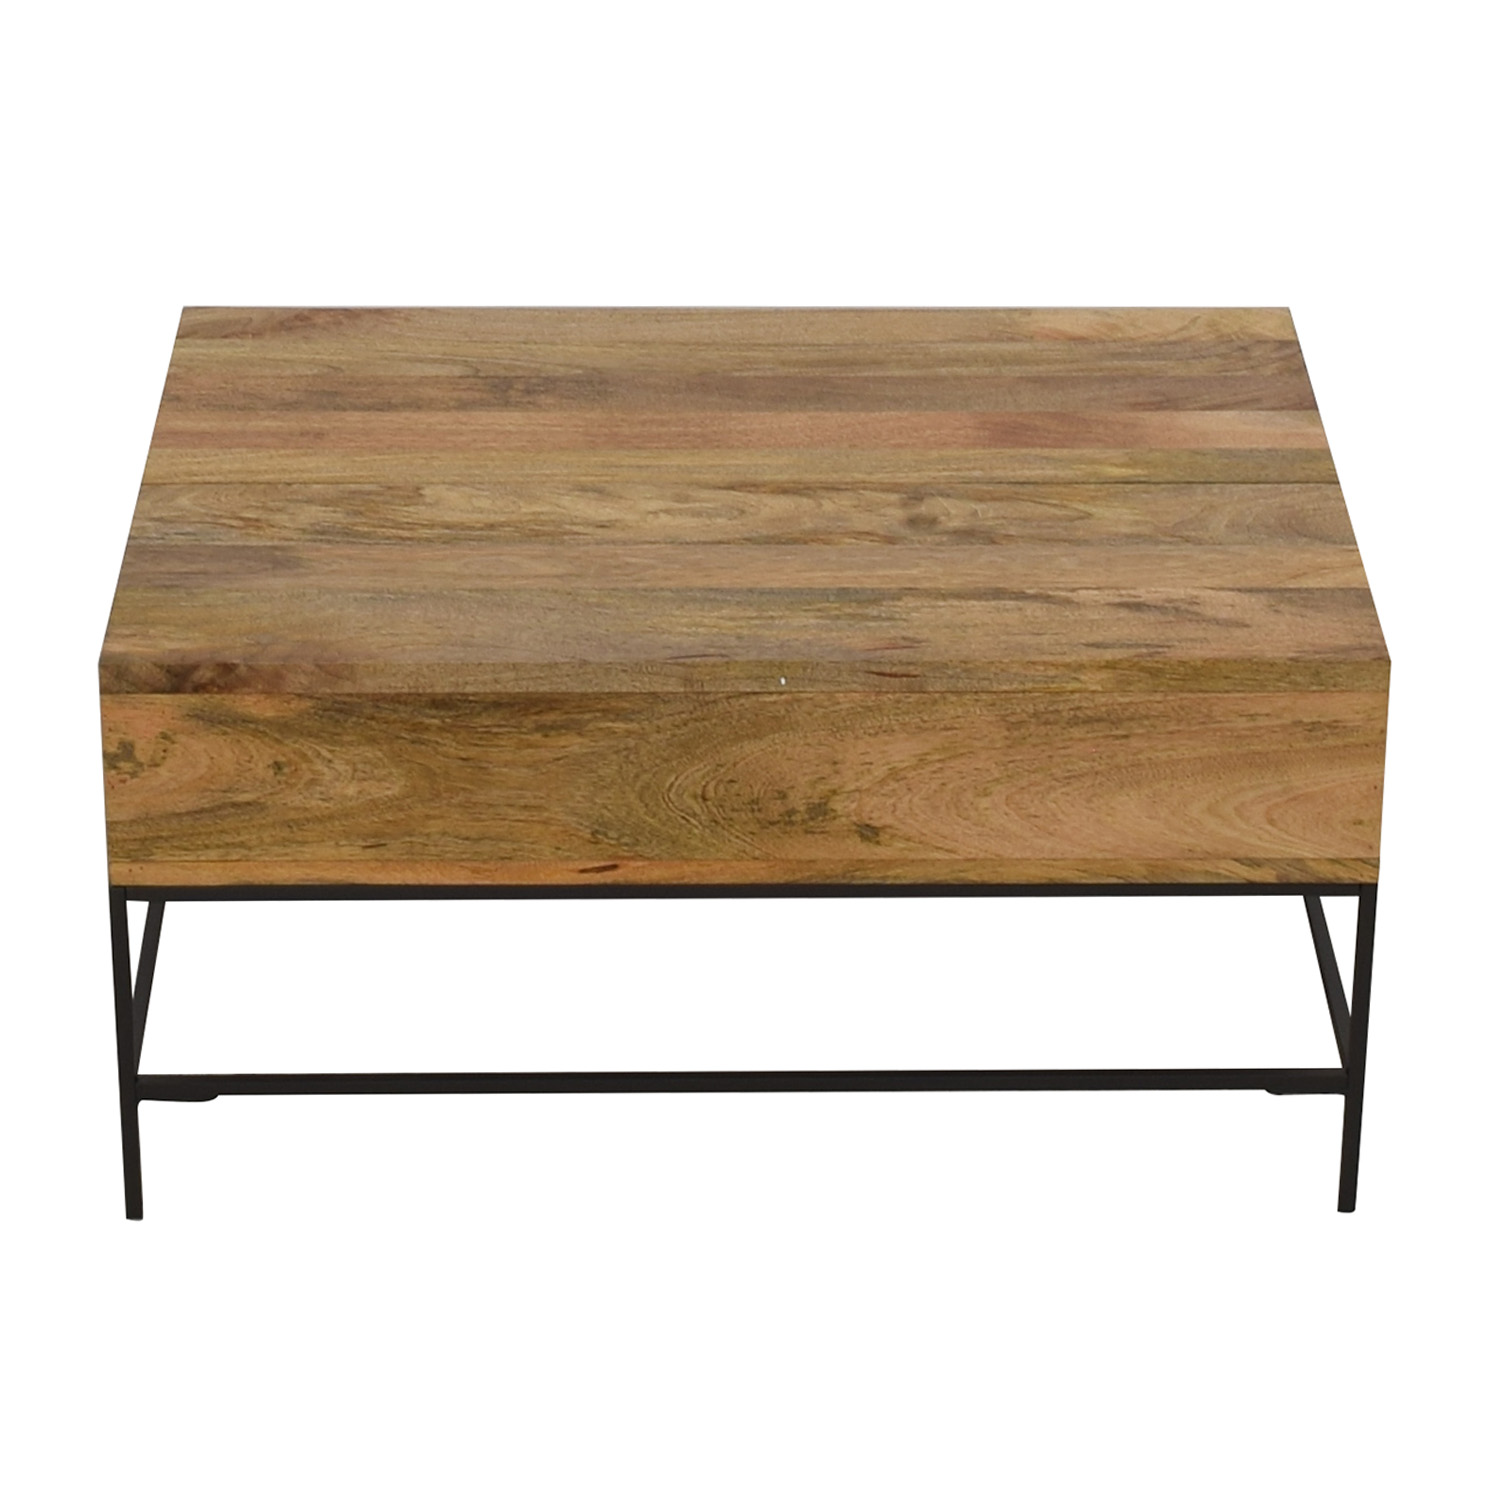 West Elm West Elm Industrial Raw Mango Storage Coffee Table nj